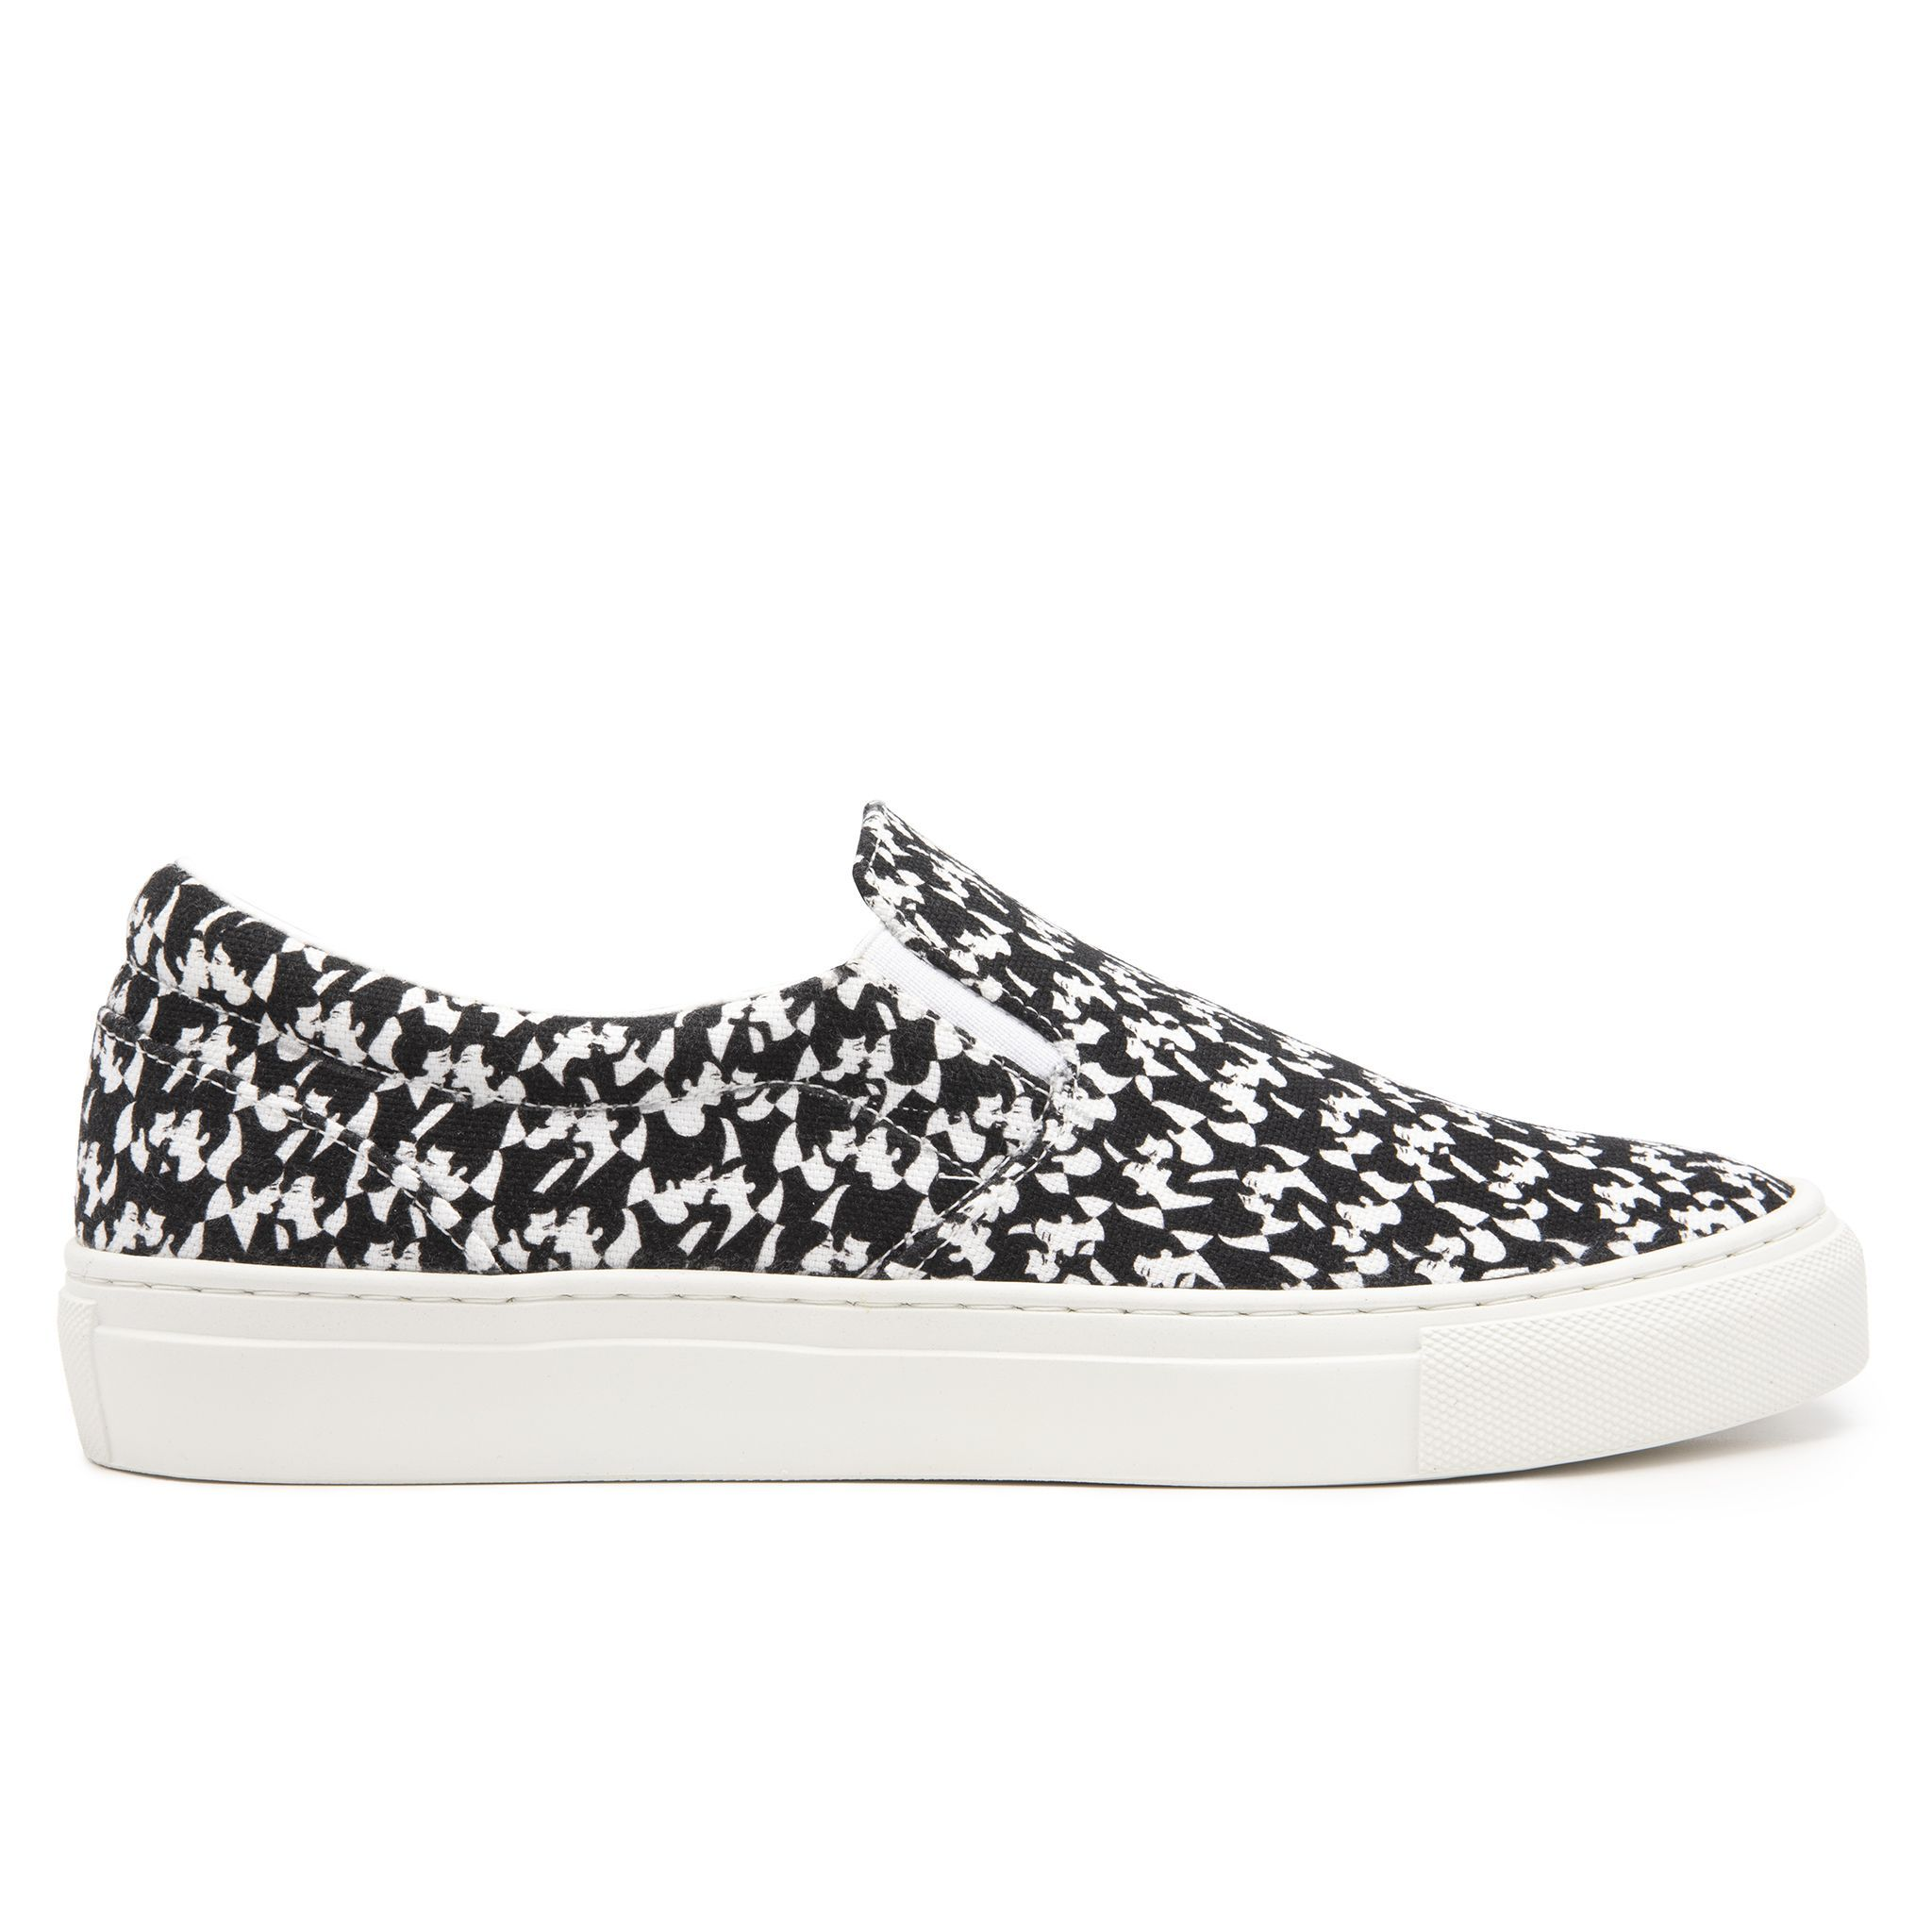 Baskets sans lacets Love(s) Noir et Blancs 2